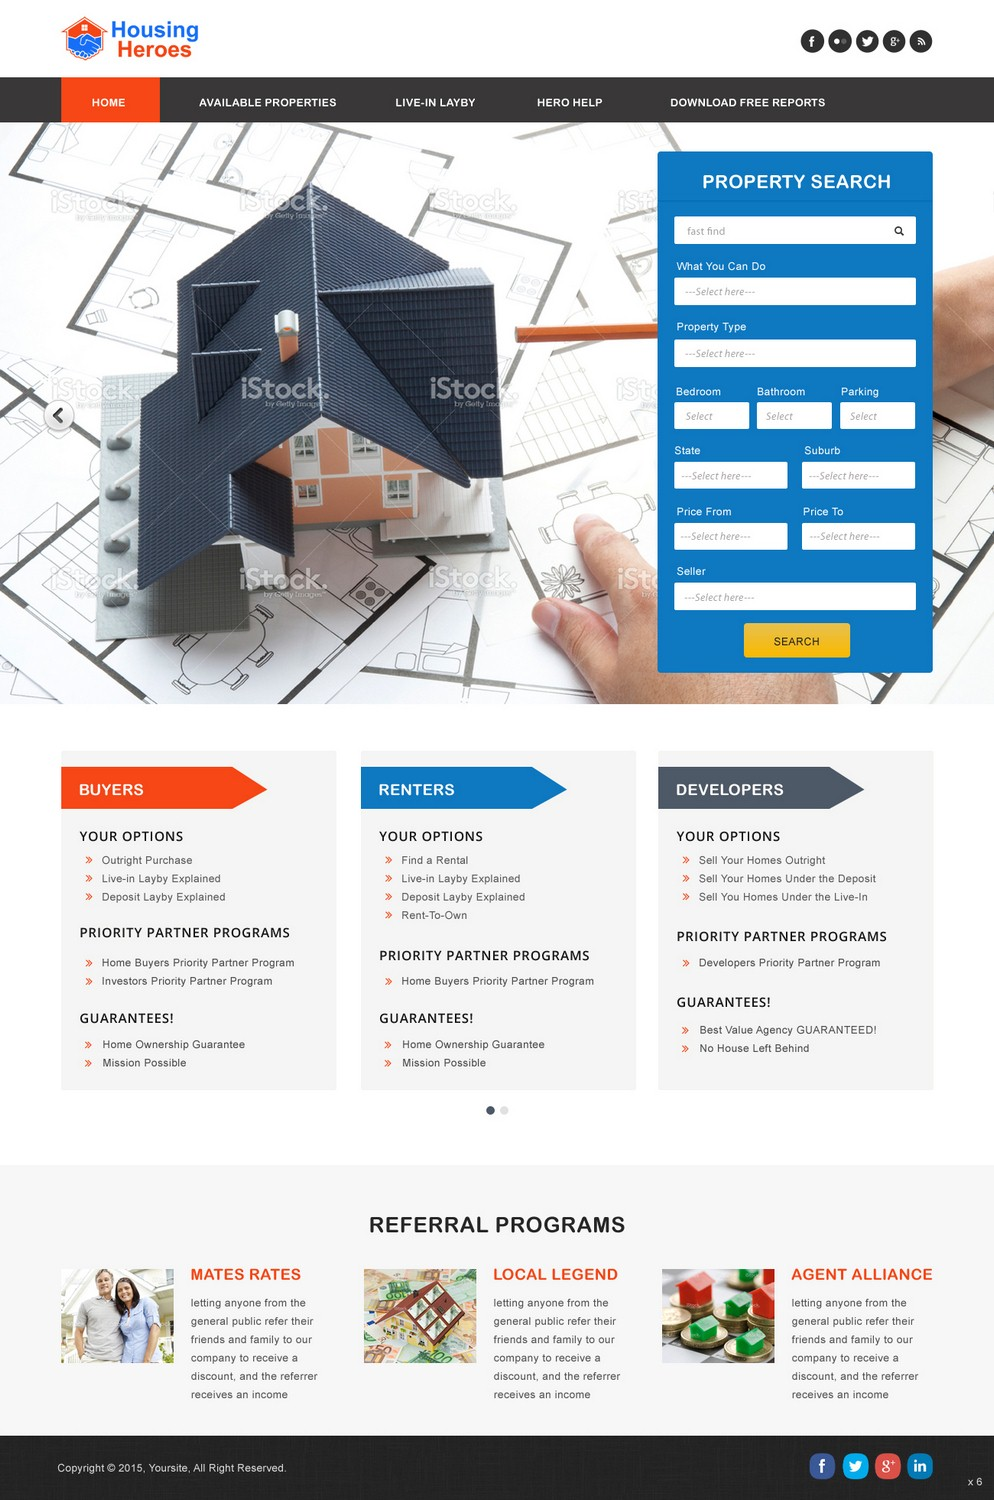 Modern Playful Real Estate Web Design For A Company By Pb Design 6642118